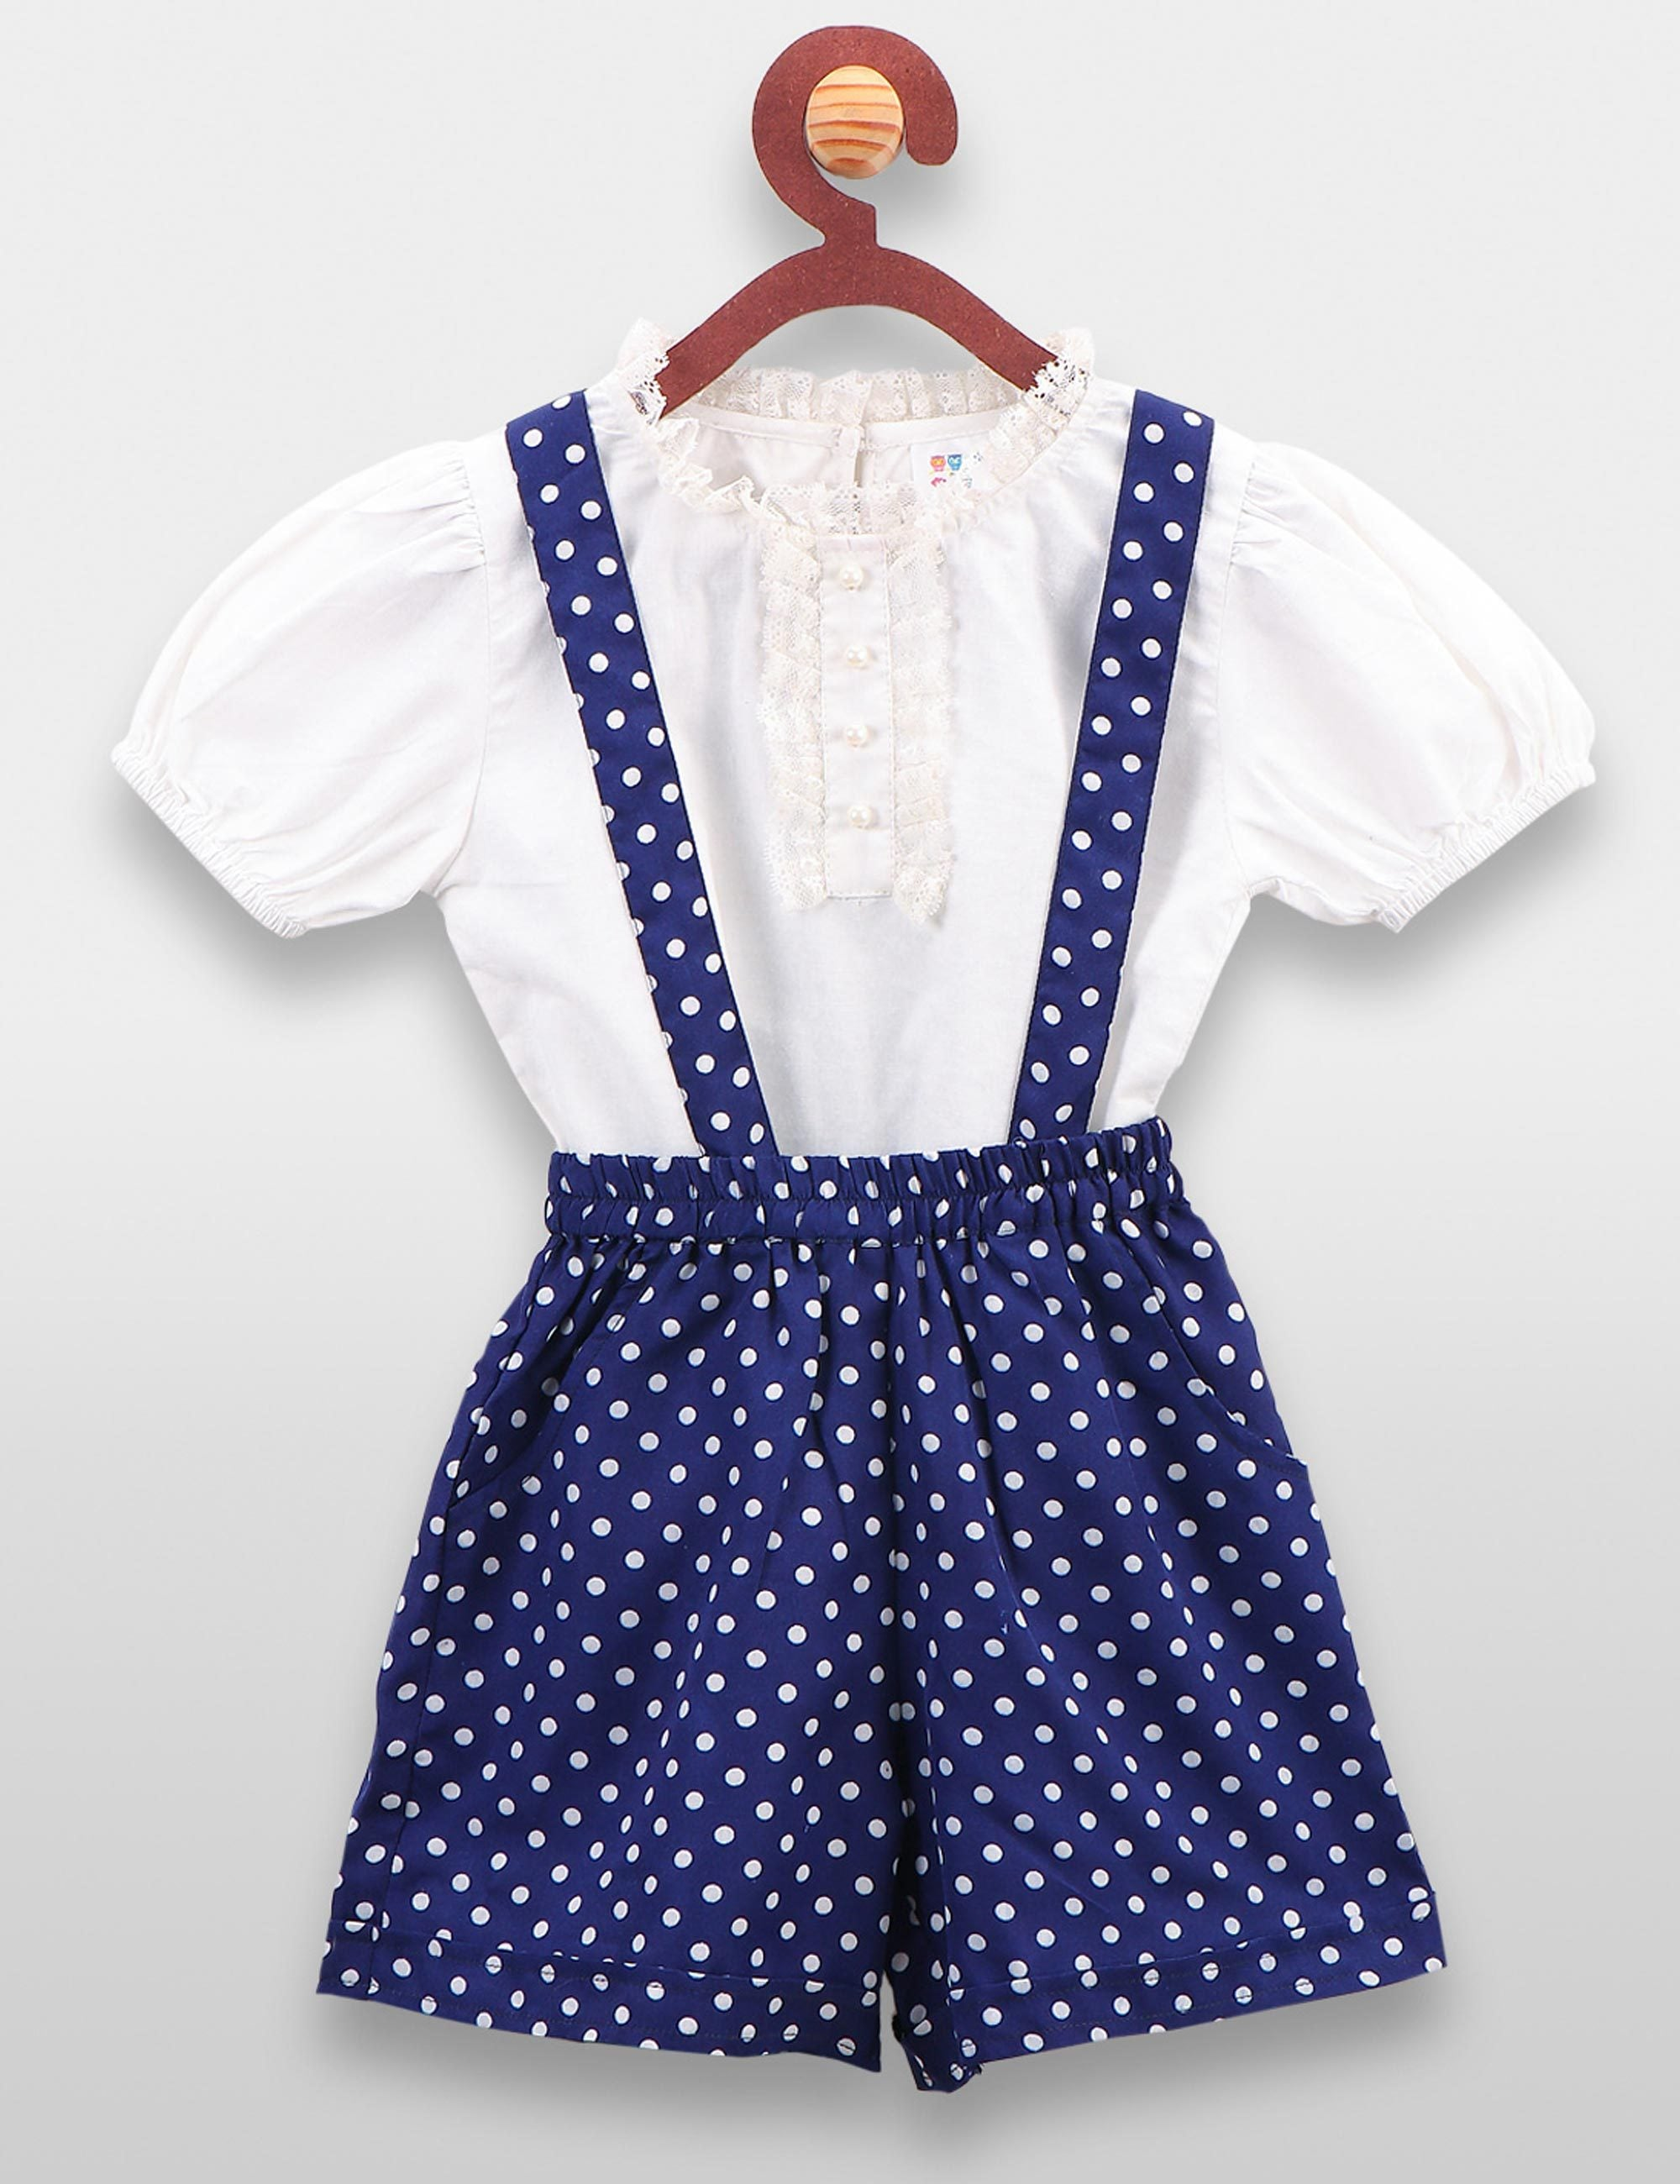 Vintage White Top and Blue Polka Dungaree Short Set